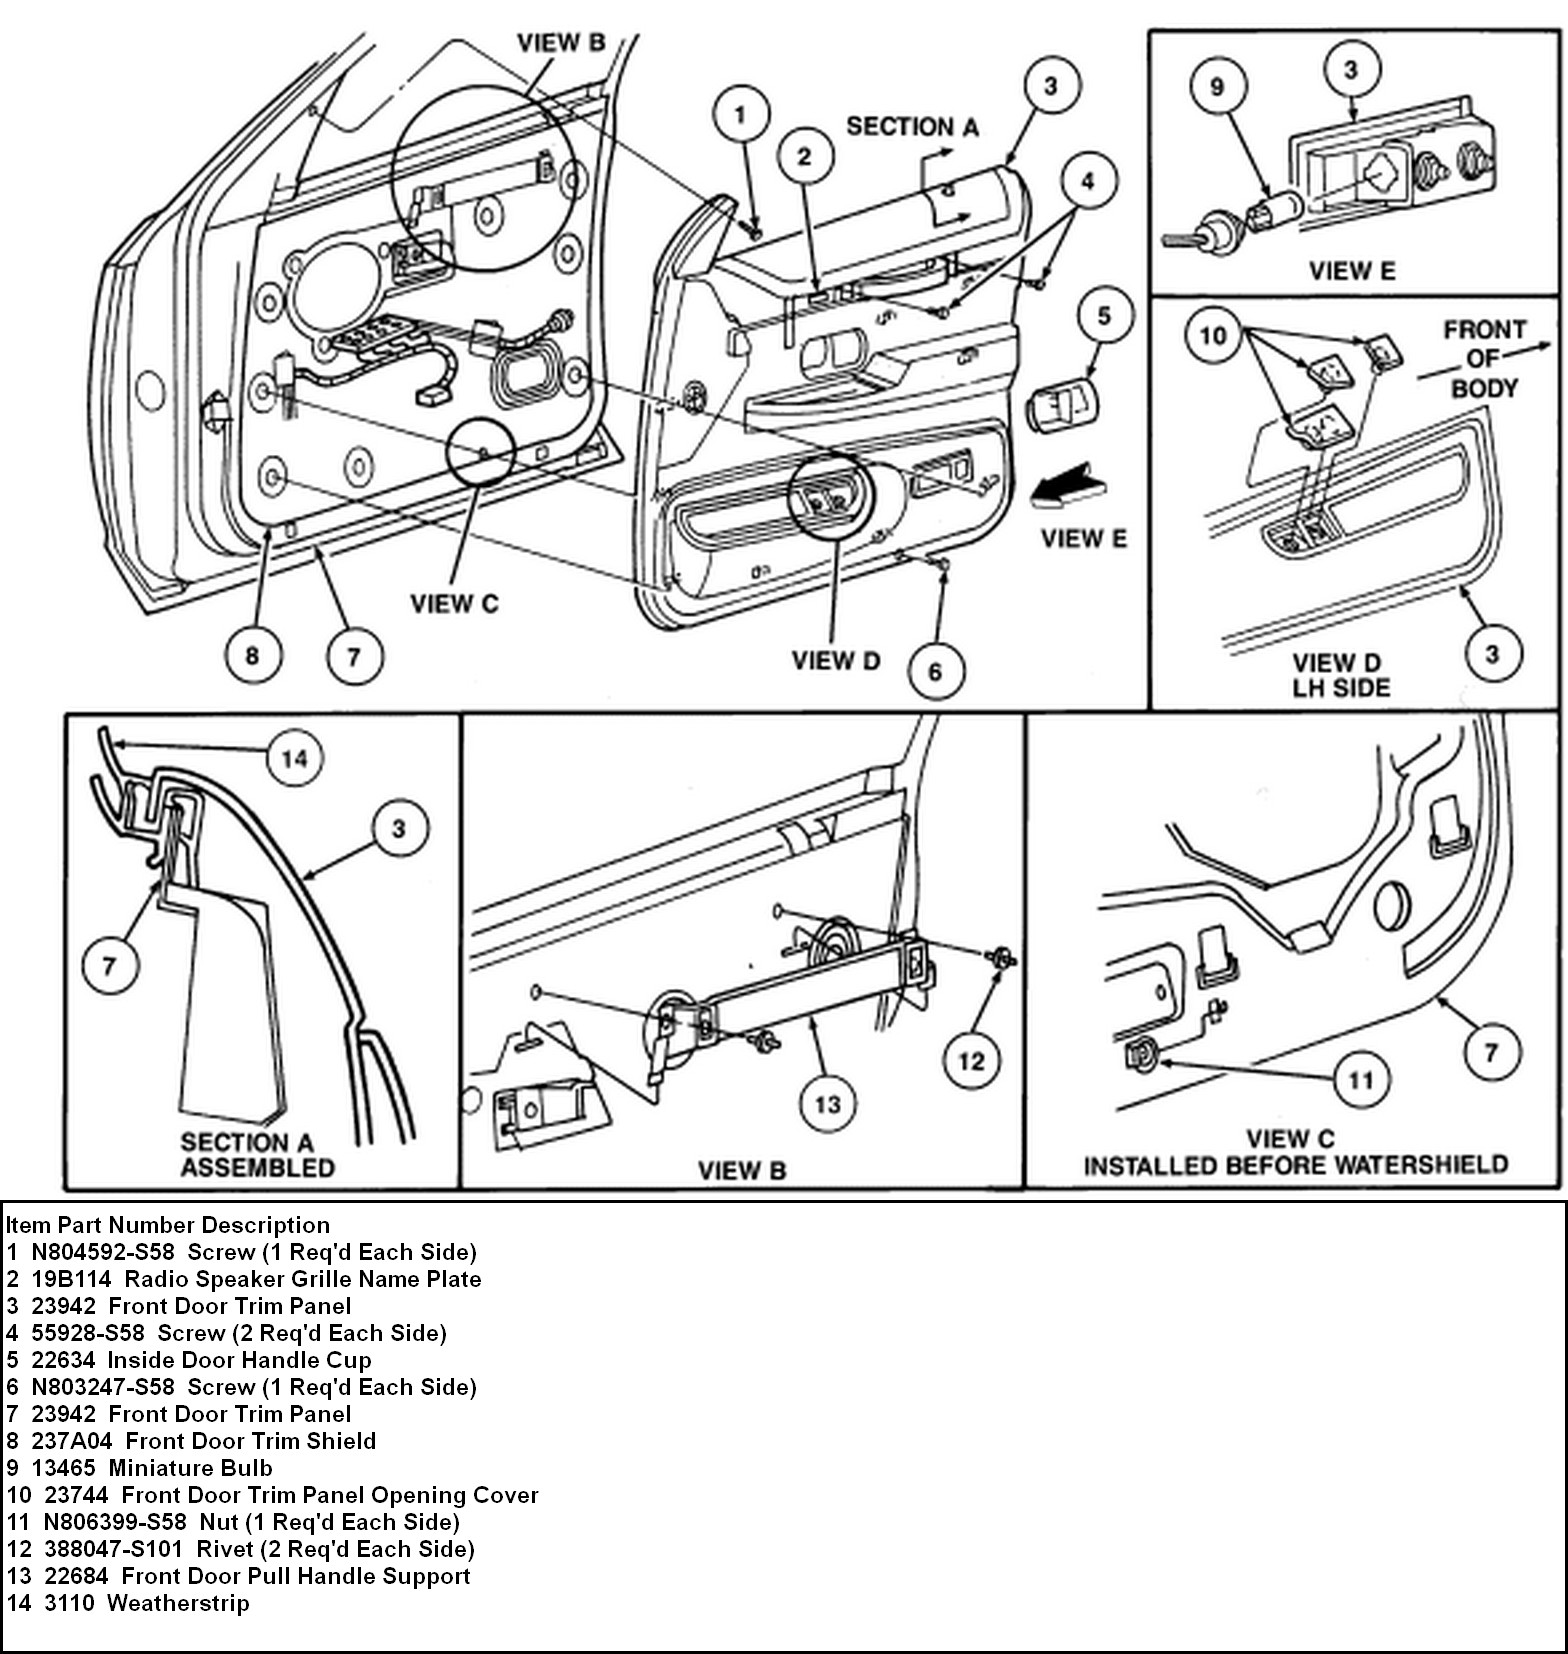 Wiring Diagram 1994 Grand Marqiis Door Window Motor 51 Lincoln Continental Engine 2010 03 13 184623 94 Gm Panel Need Instructions For Removal Of The Regulator At Cita